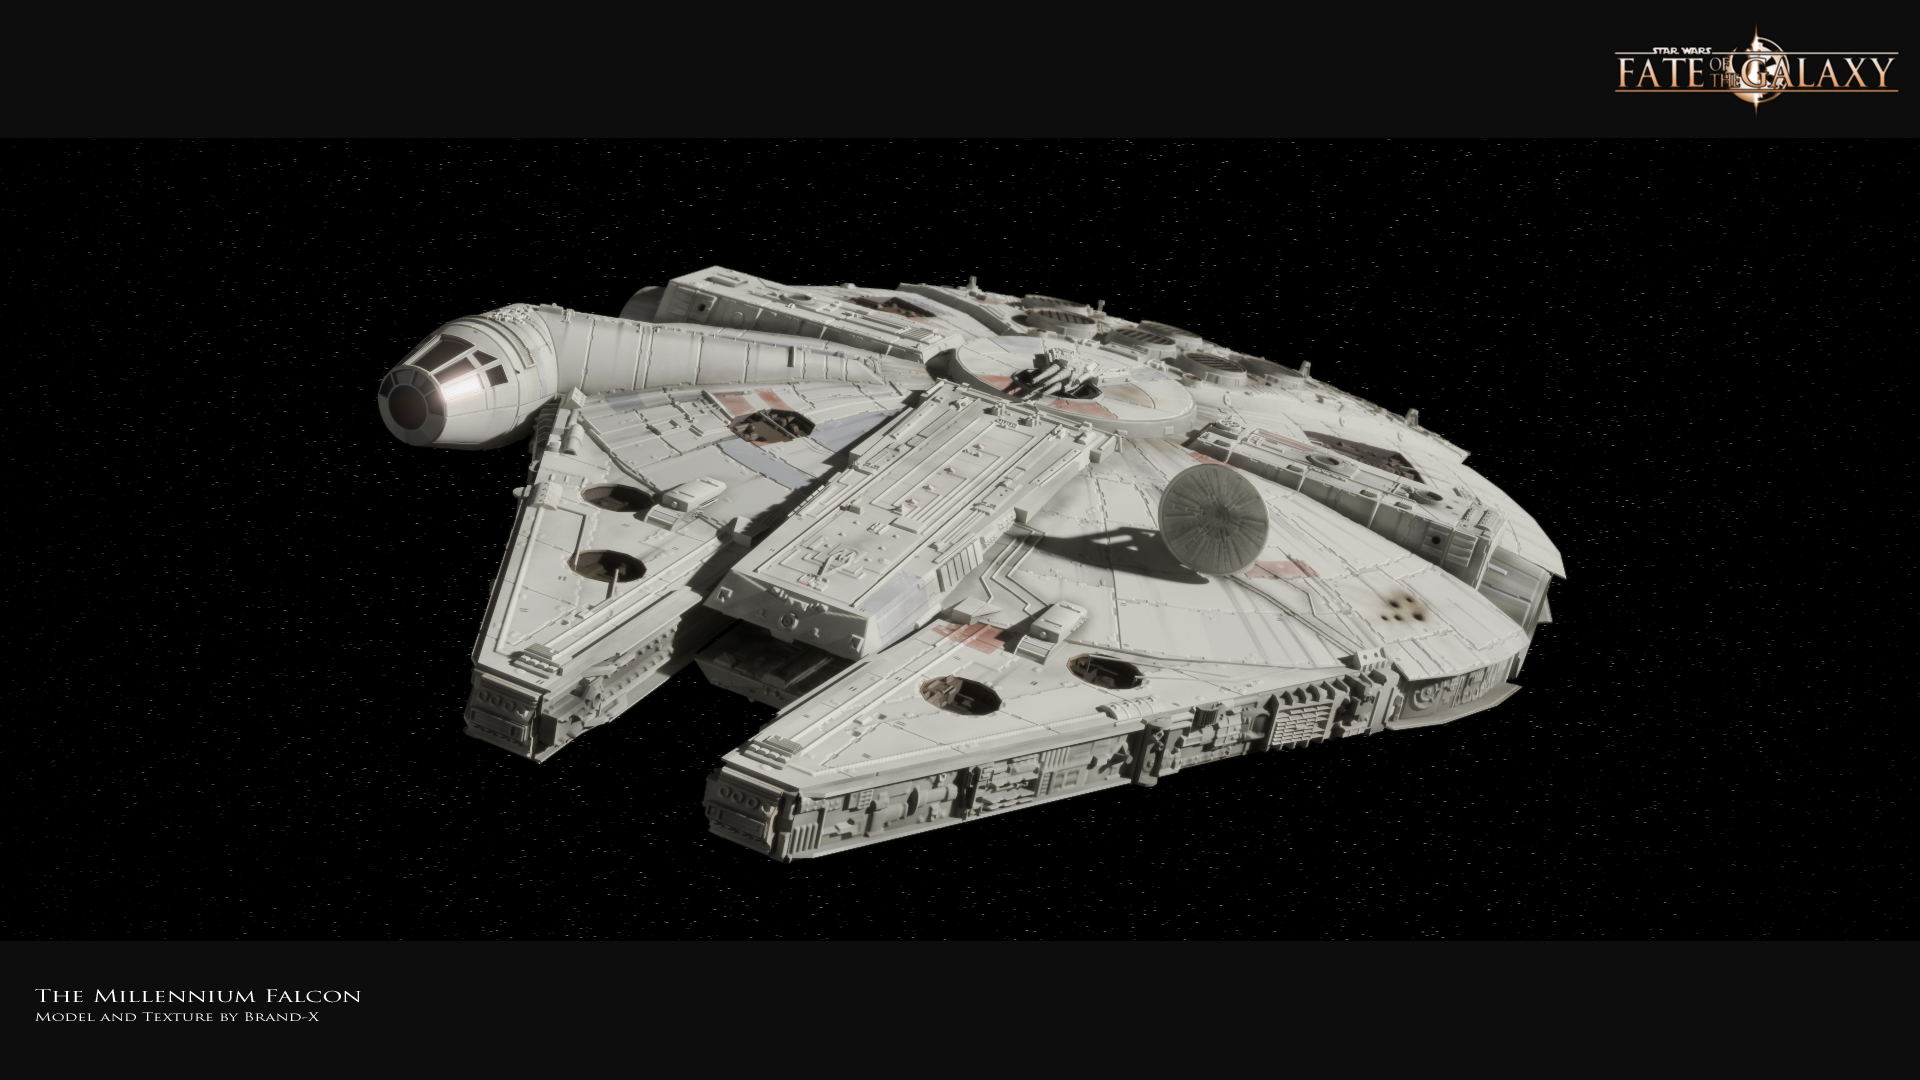 Displaying images for millenium falcon cockpit wallpaper - Showing Gallery For Star Wars Iphone 6 Wallpaper Millenium Falcon